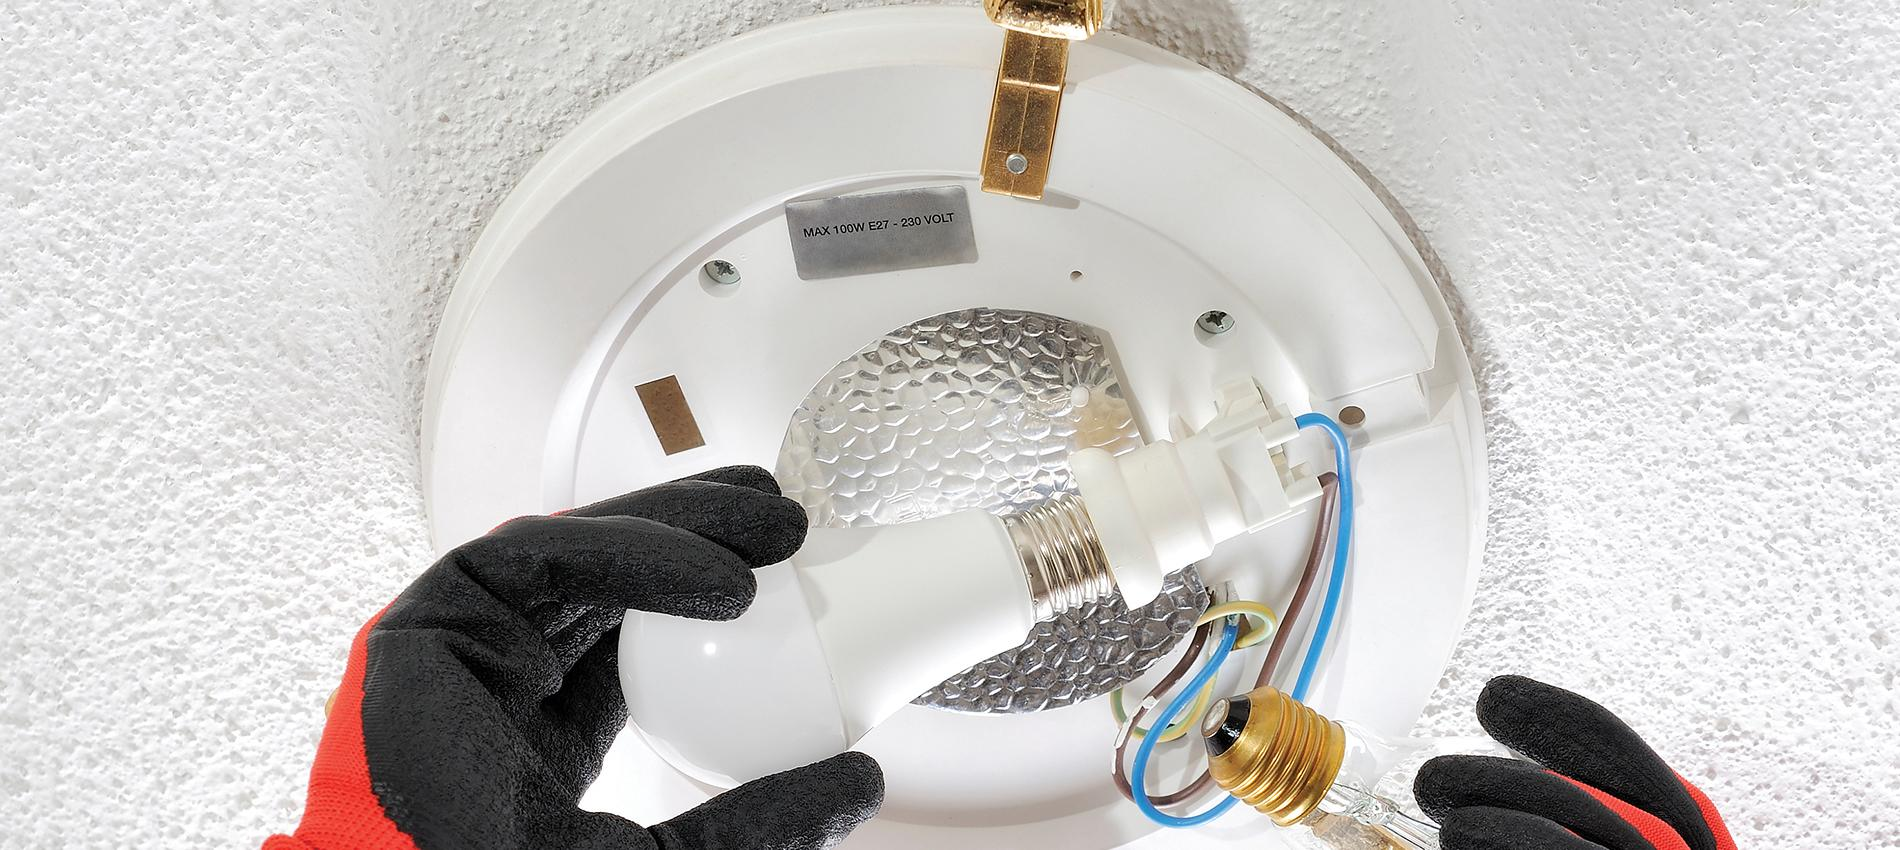 Lighting Technology of the Millennium: Switching out Old Lights for LEDs